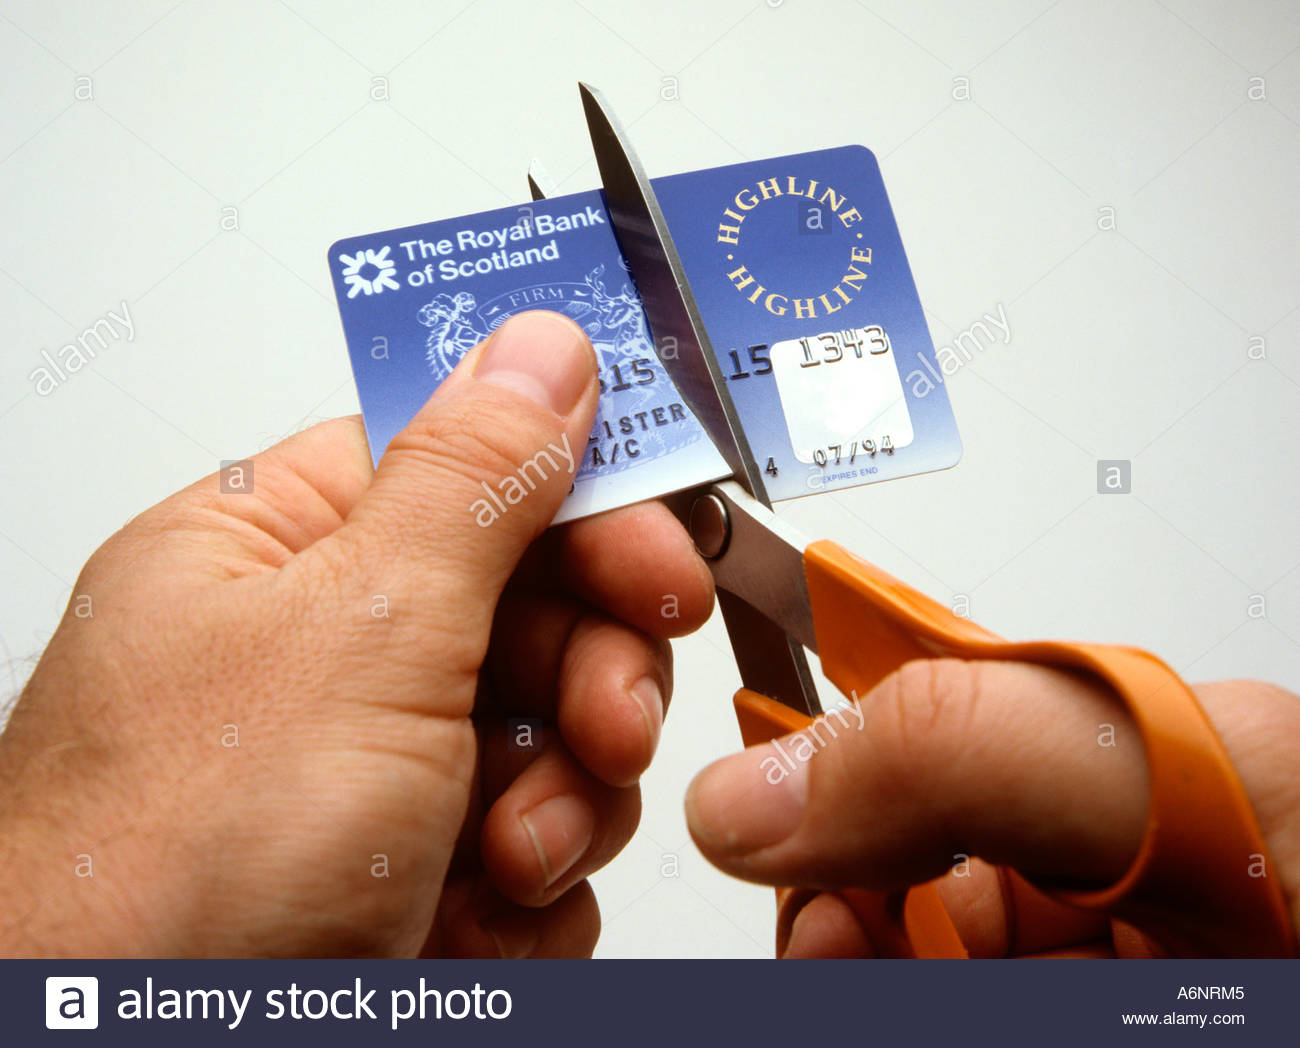 Bank Cheque Cut Stock Photos & Bank Cheque Cut Stock Images.